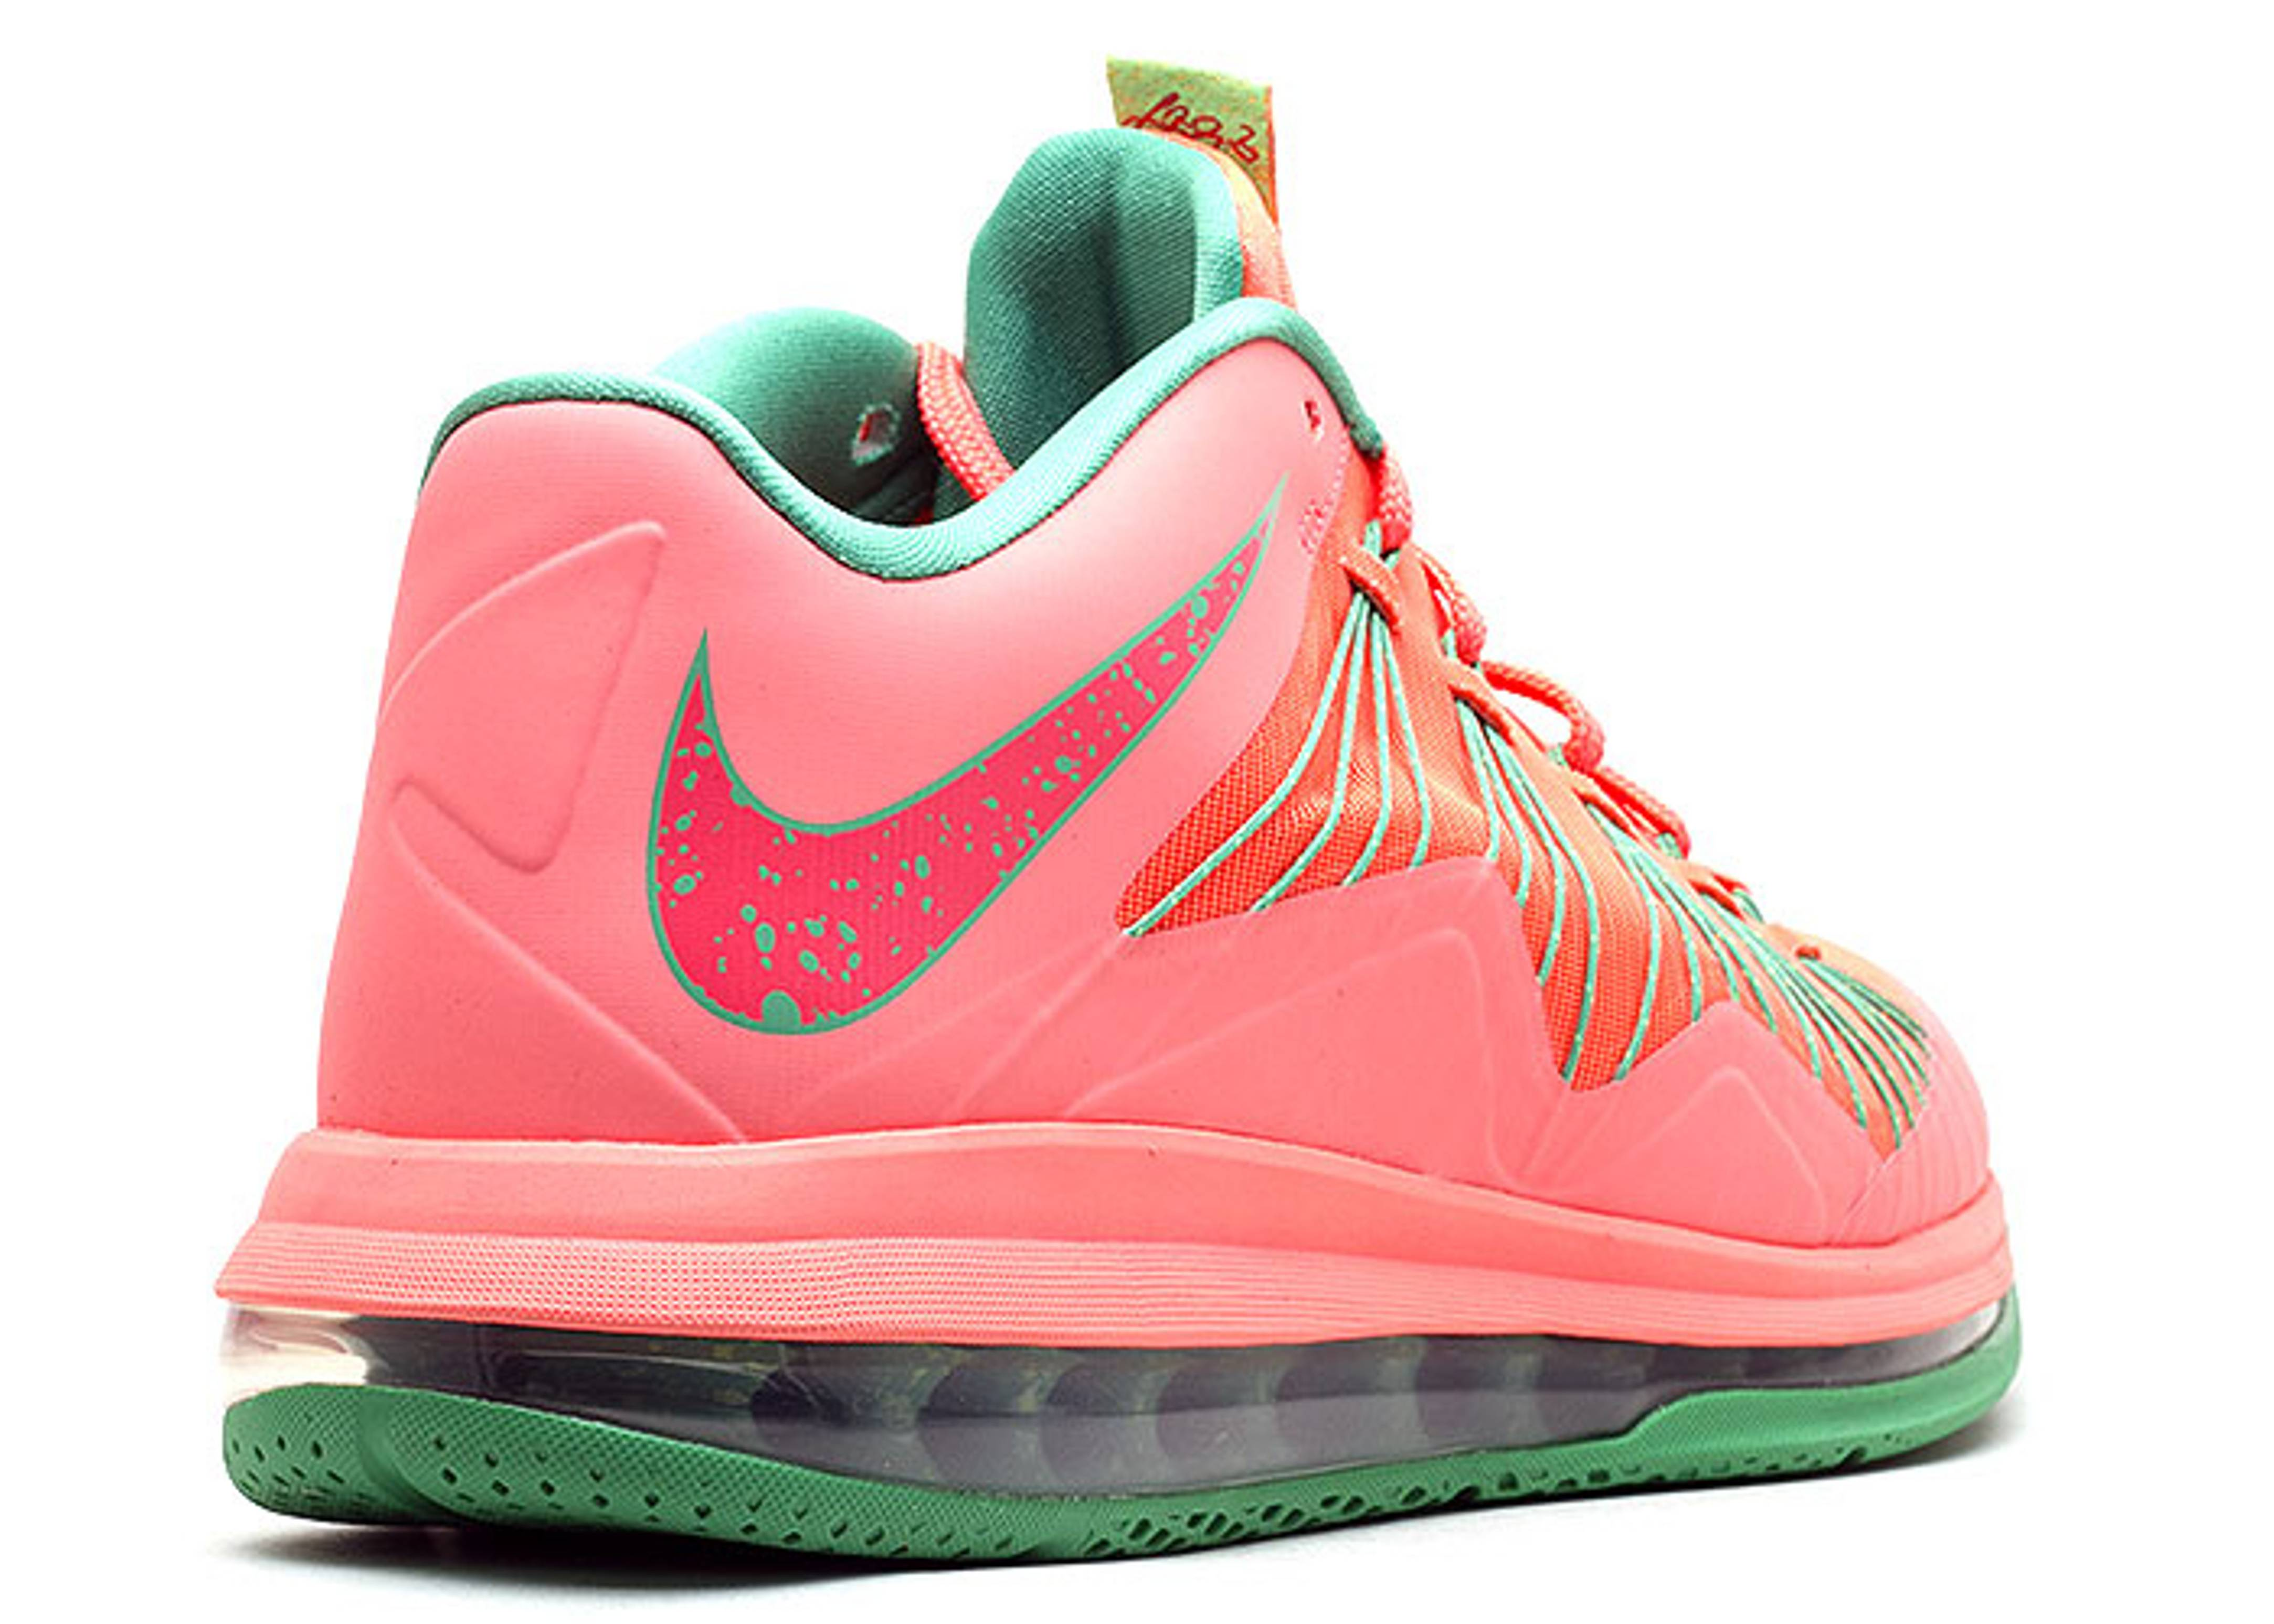 524ffc3a7a6d ... Foot Locker Blog. Air Max Lebron 10 Low